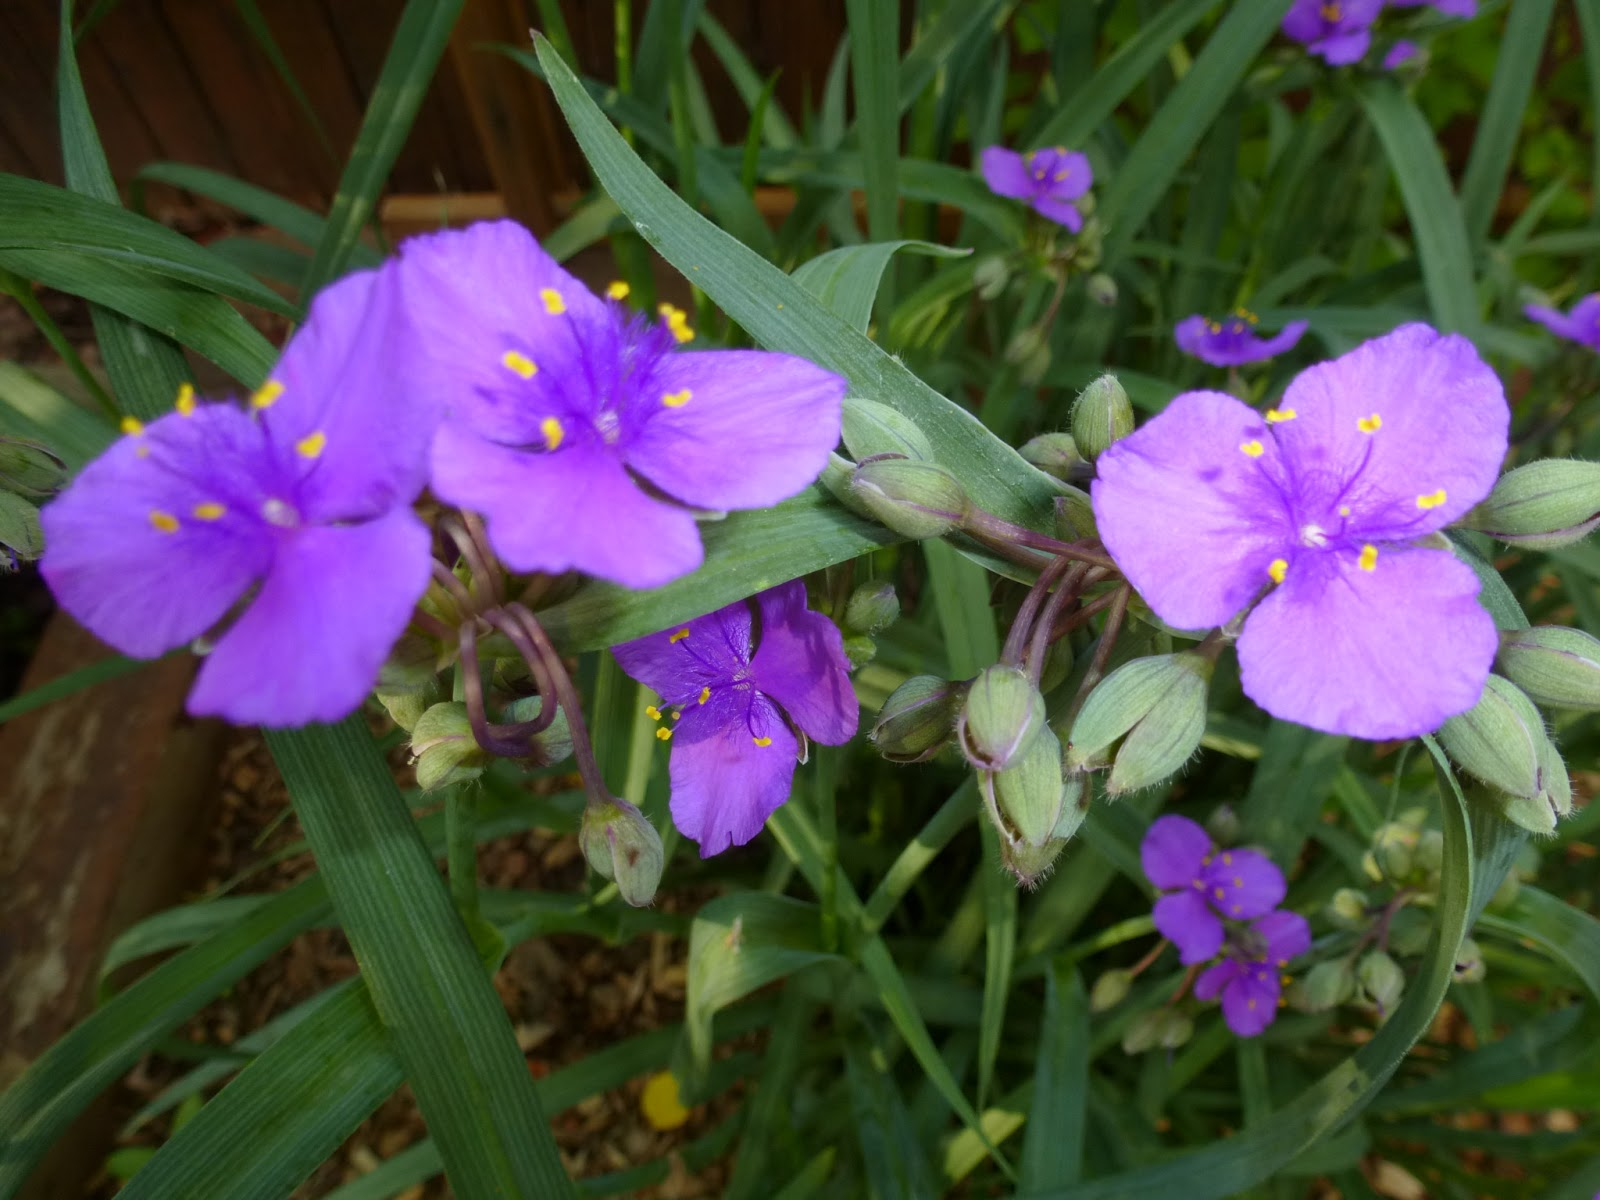 Loris garden spiderwort fridays flower grown in zones 3 9 it has bluish green grass like leaves with three petaled purple flowers the contrasting yellow stamens really set this off mightylinksfo